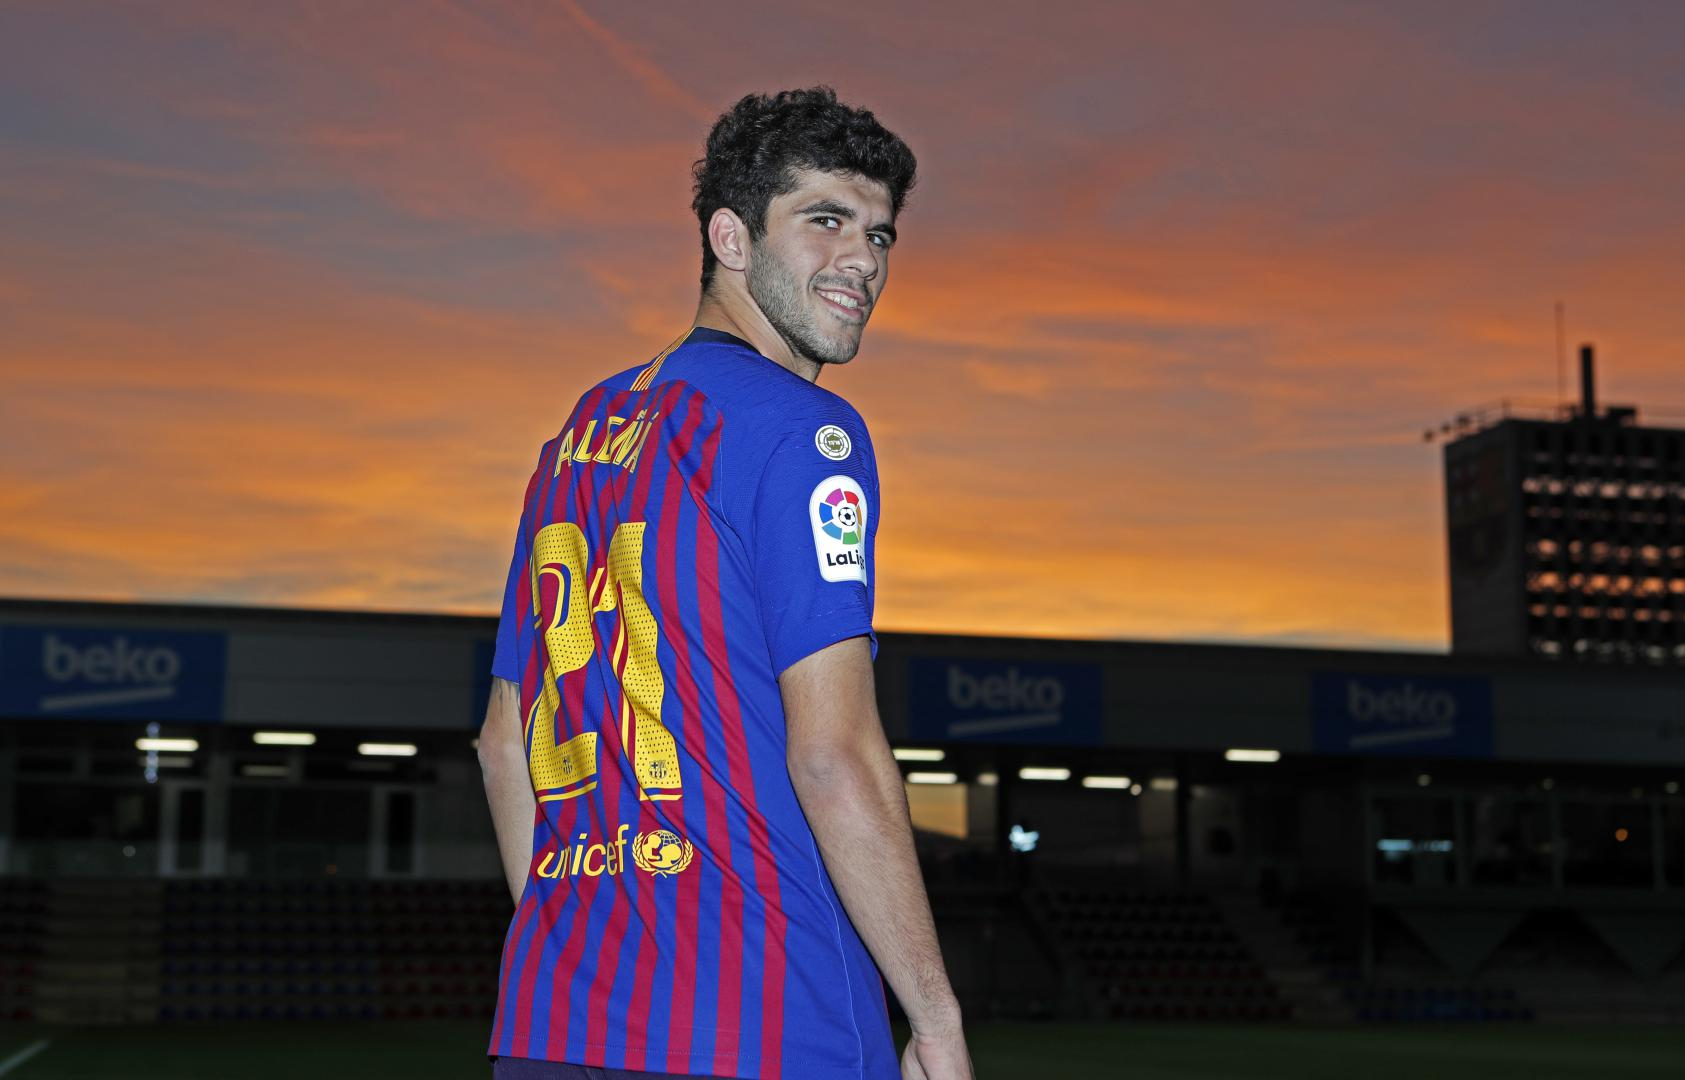 �� @Carlesale10, 21 years of Barça passion ❤�� https://t.co/RstD905Rb3